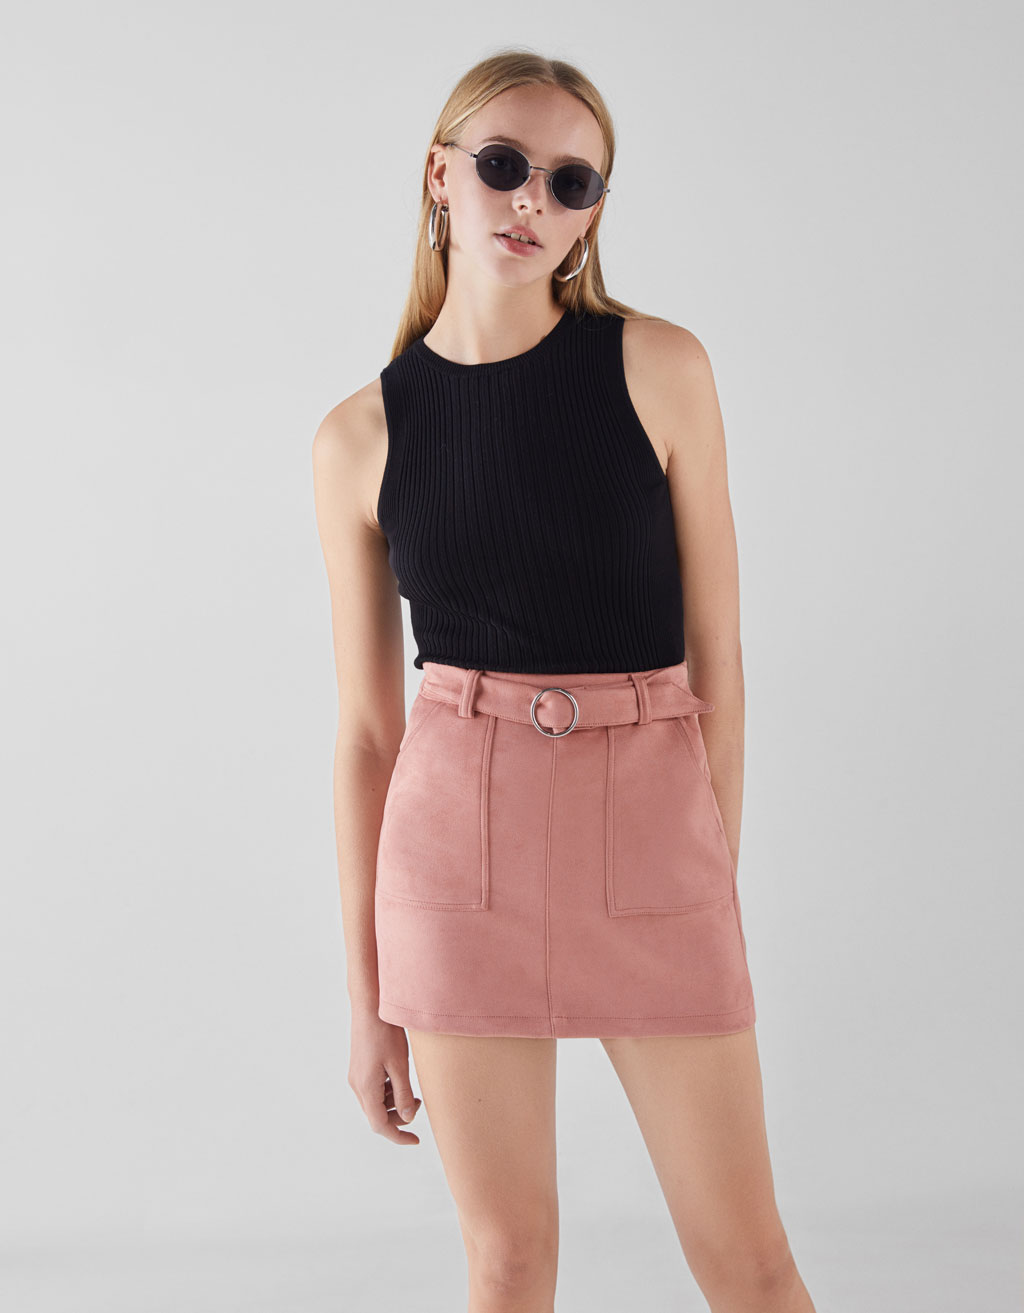 Mini skirt with belt